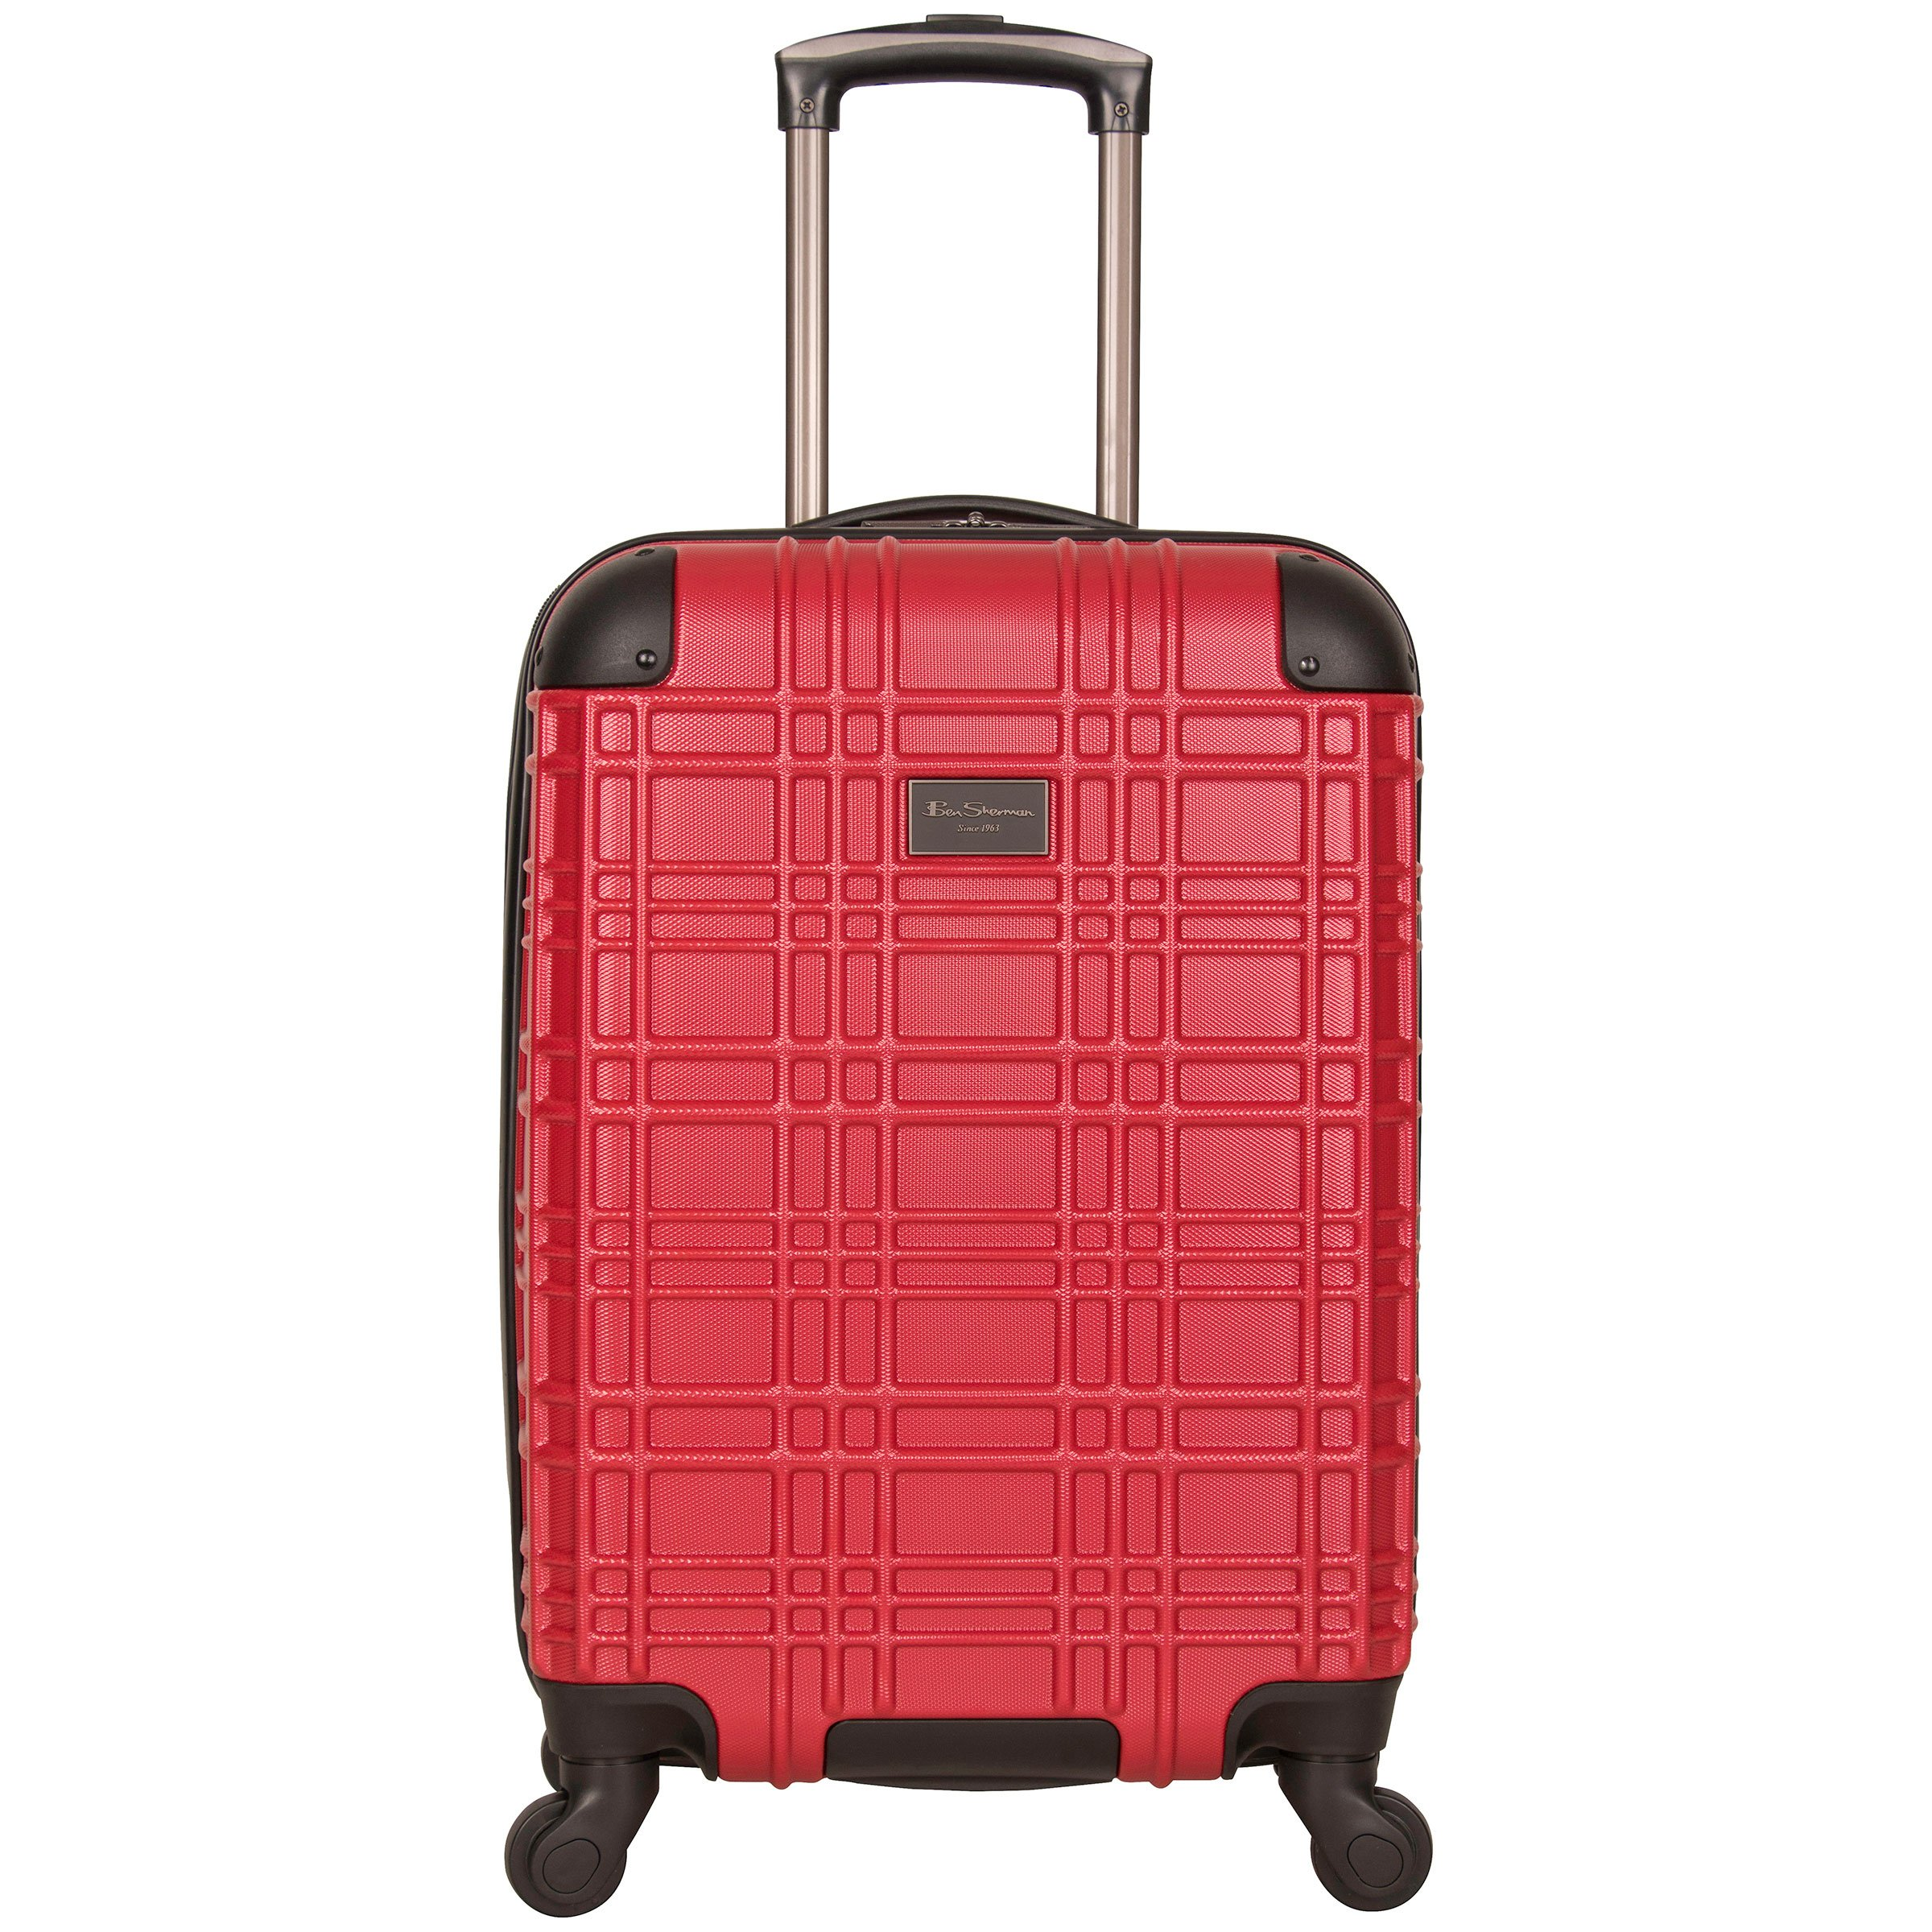 Ben Sherman Nottingham 20'' Pap (Abs with Polycarbonate Blend) Wheeled Upright Carry-on, Red